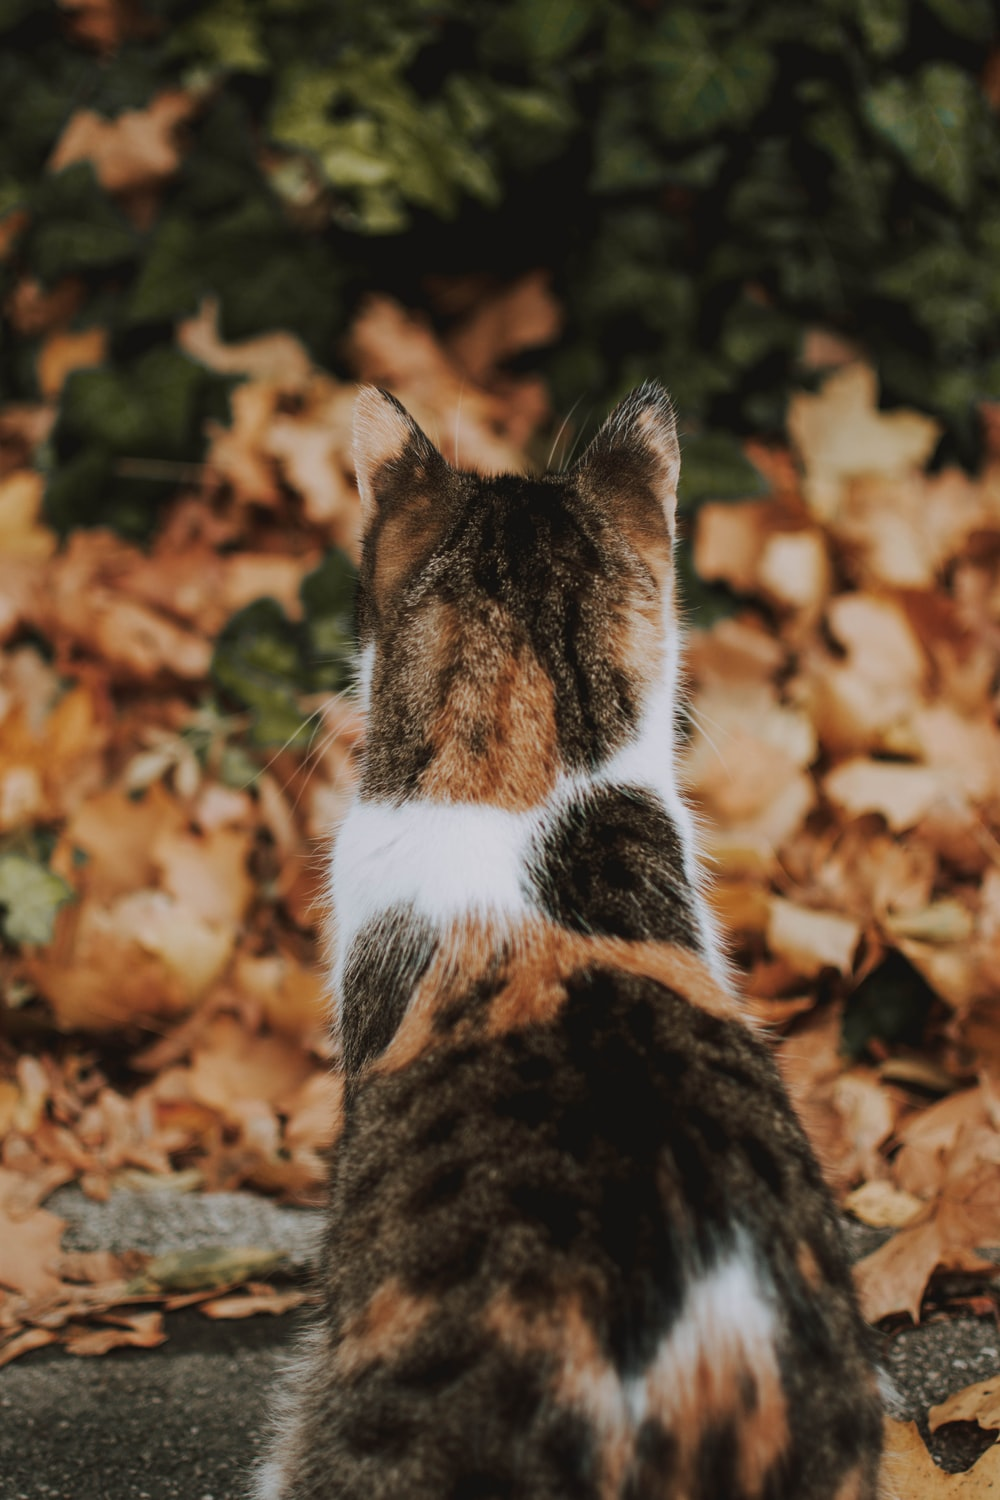 calico cat standing in front of dry leaves